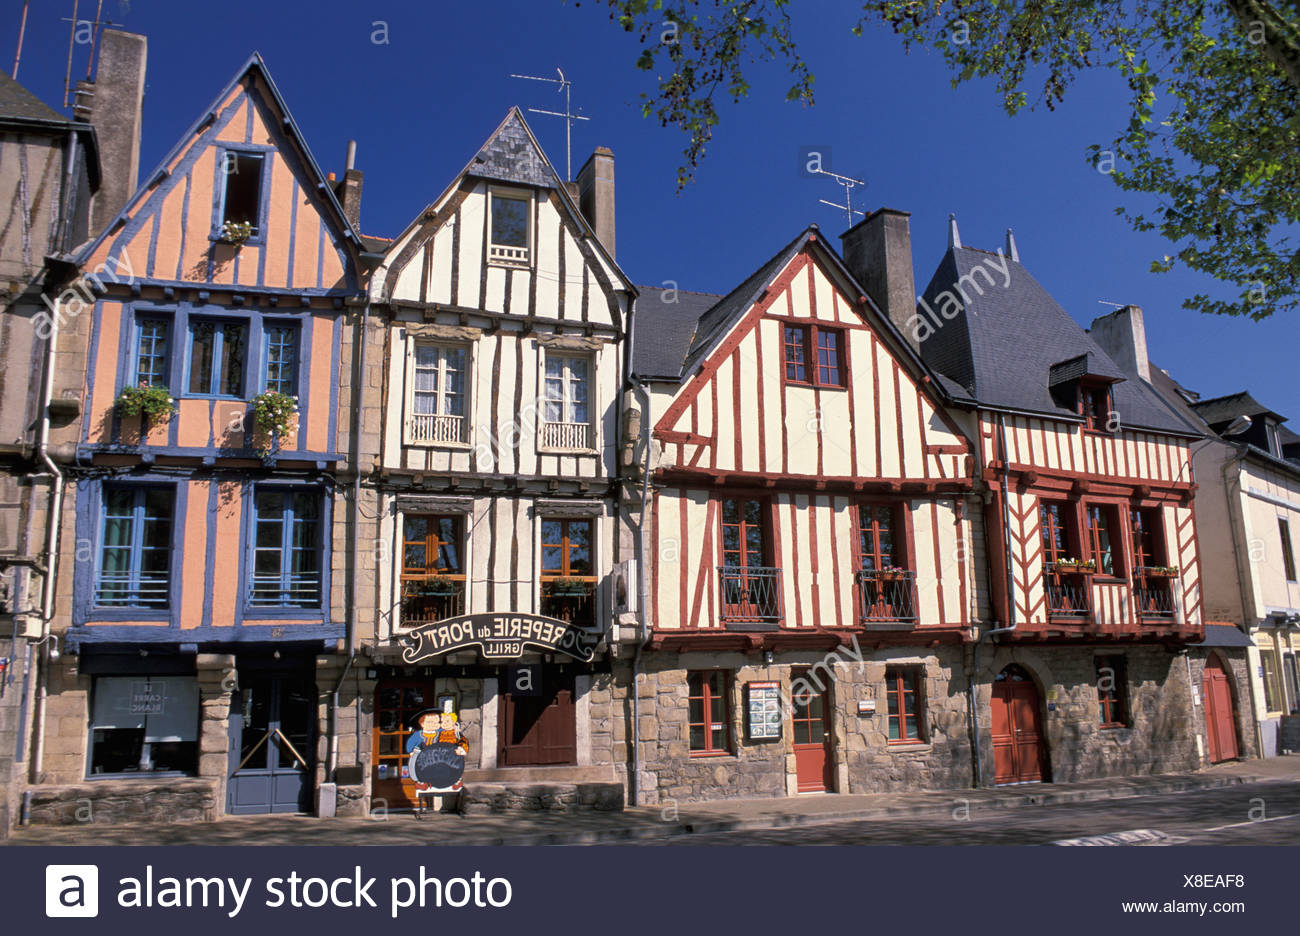 Wood framed, half timbered, houses, Le Port, Vannes, Brittany, Bretagne, France, Europe, facade - Stock Image